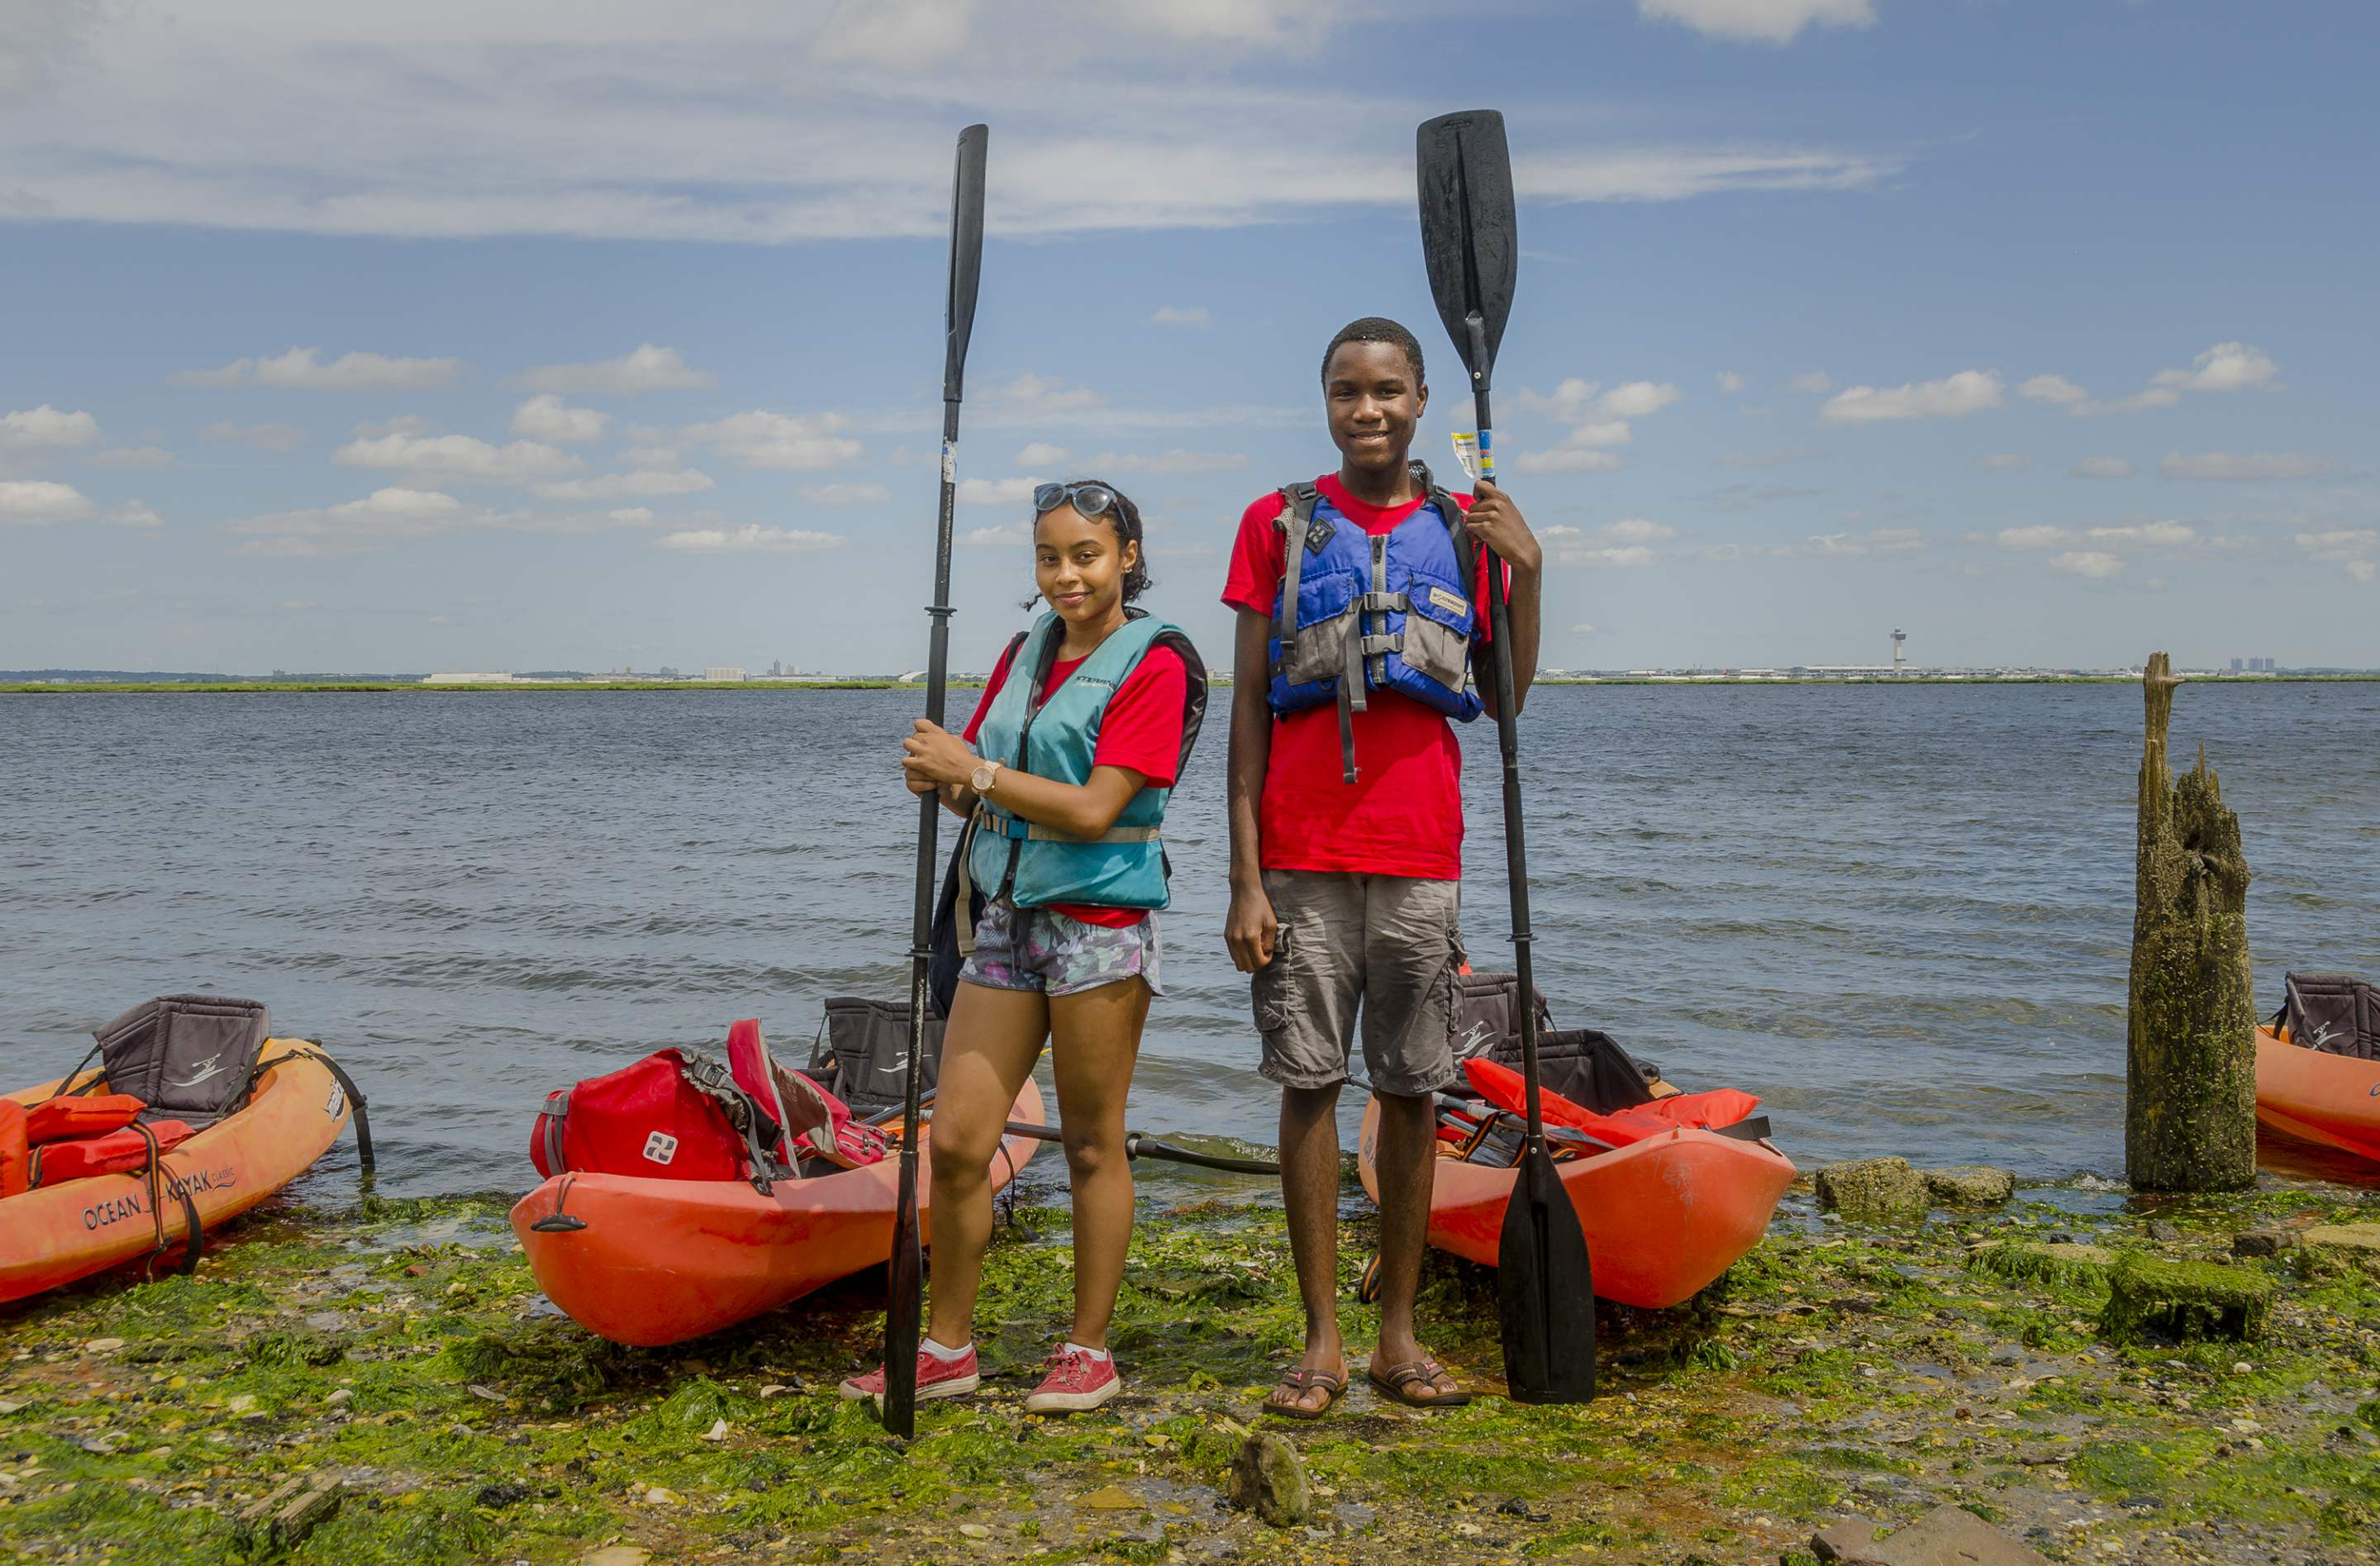 Jamaica Bay Community Cleanup & Kayak preview